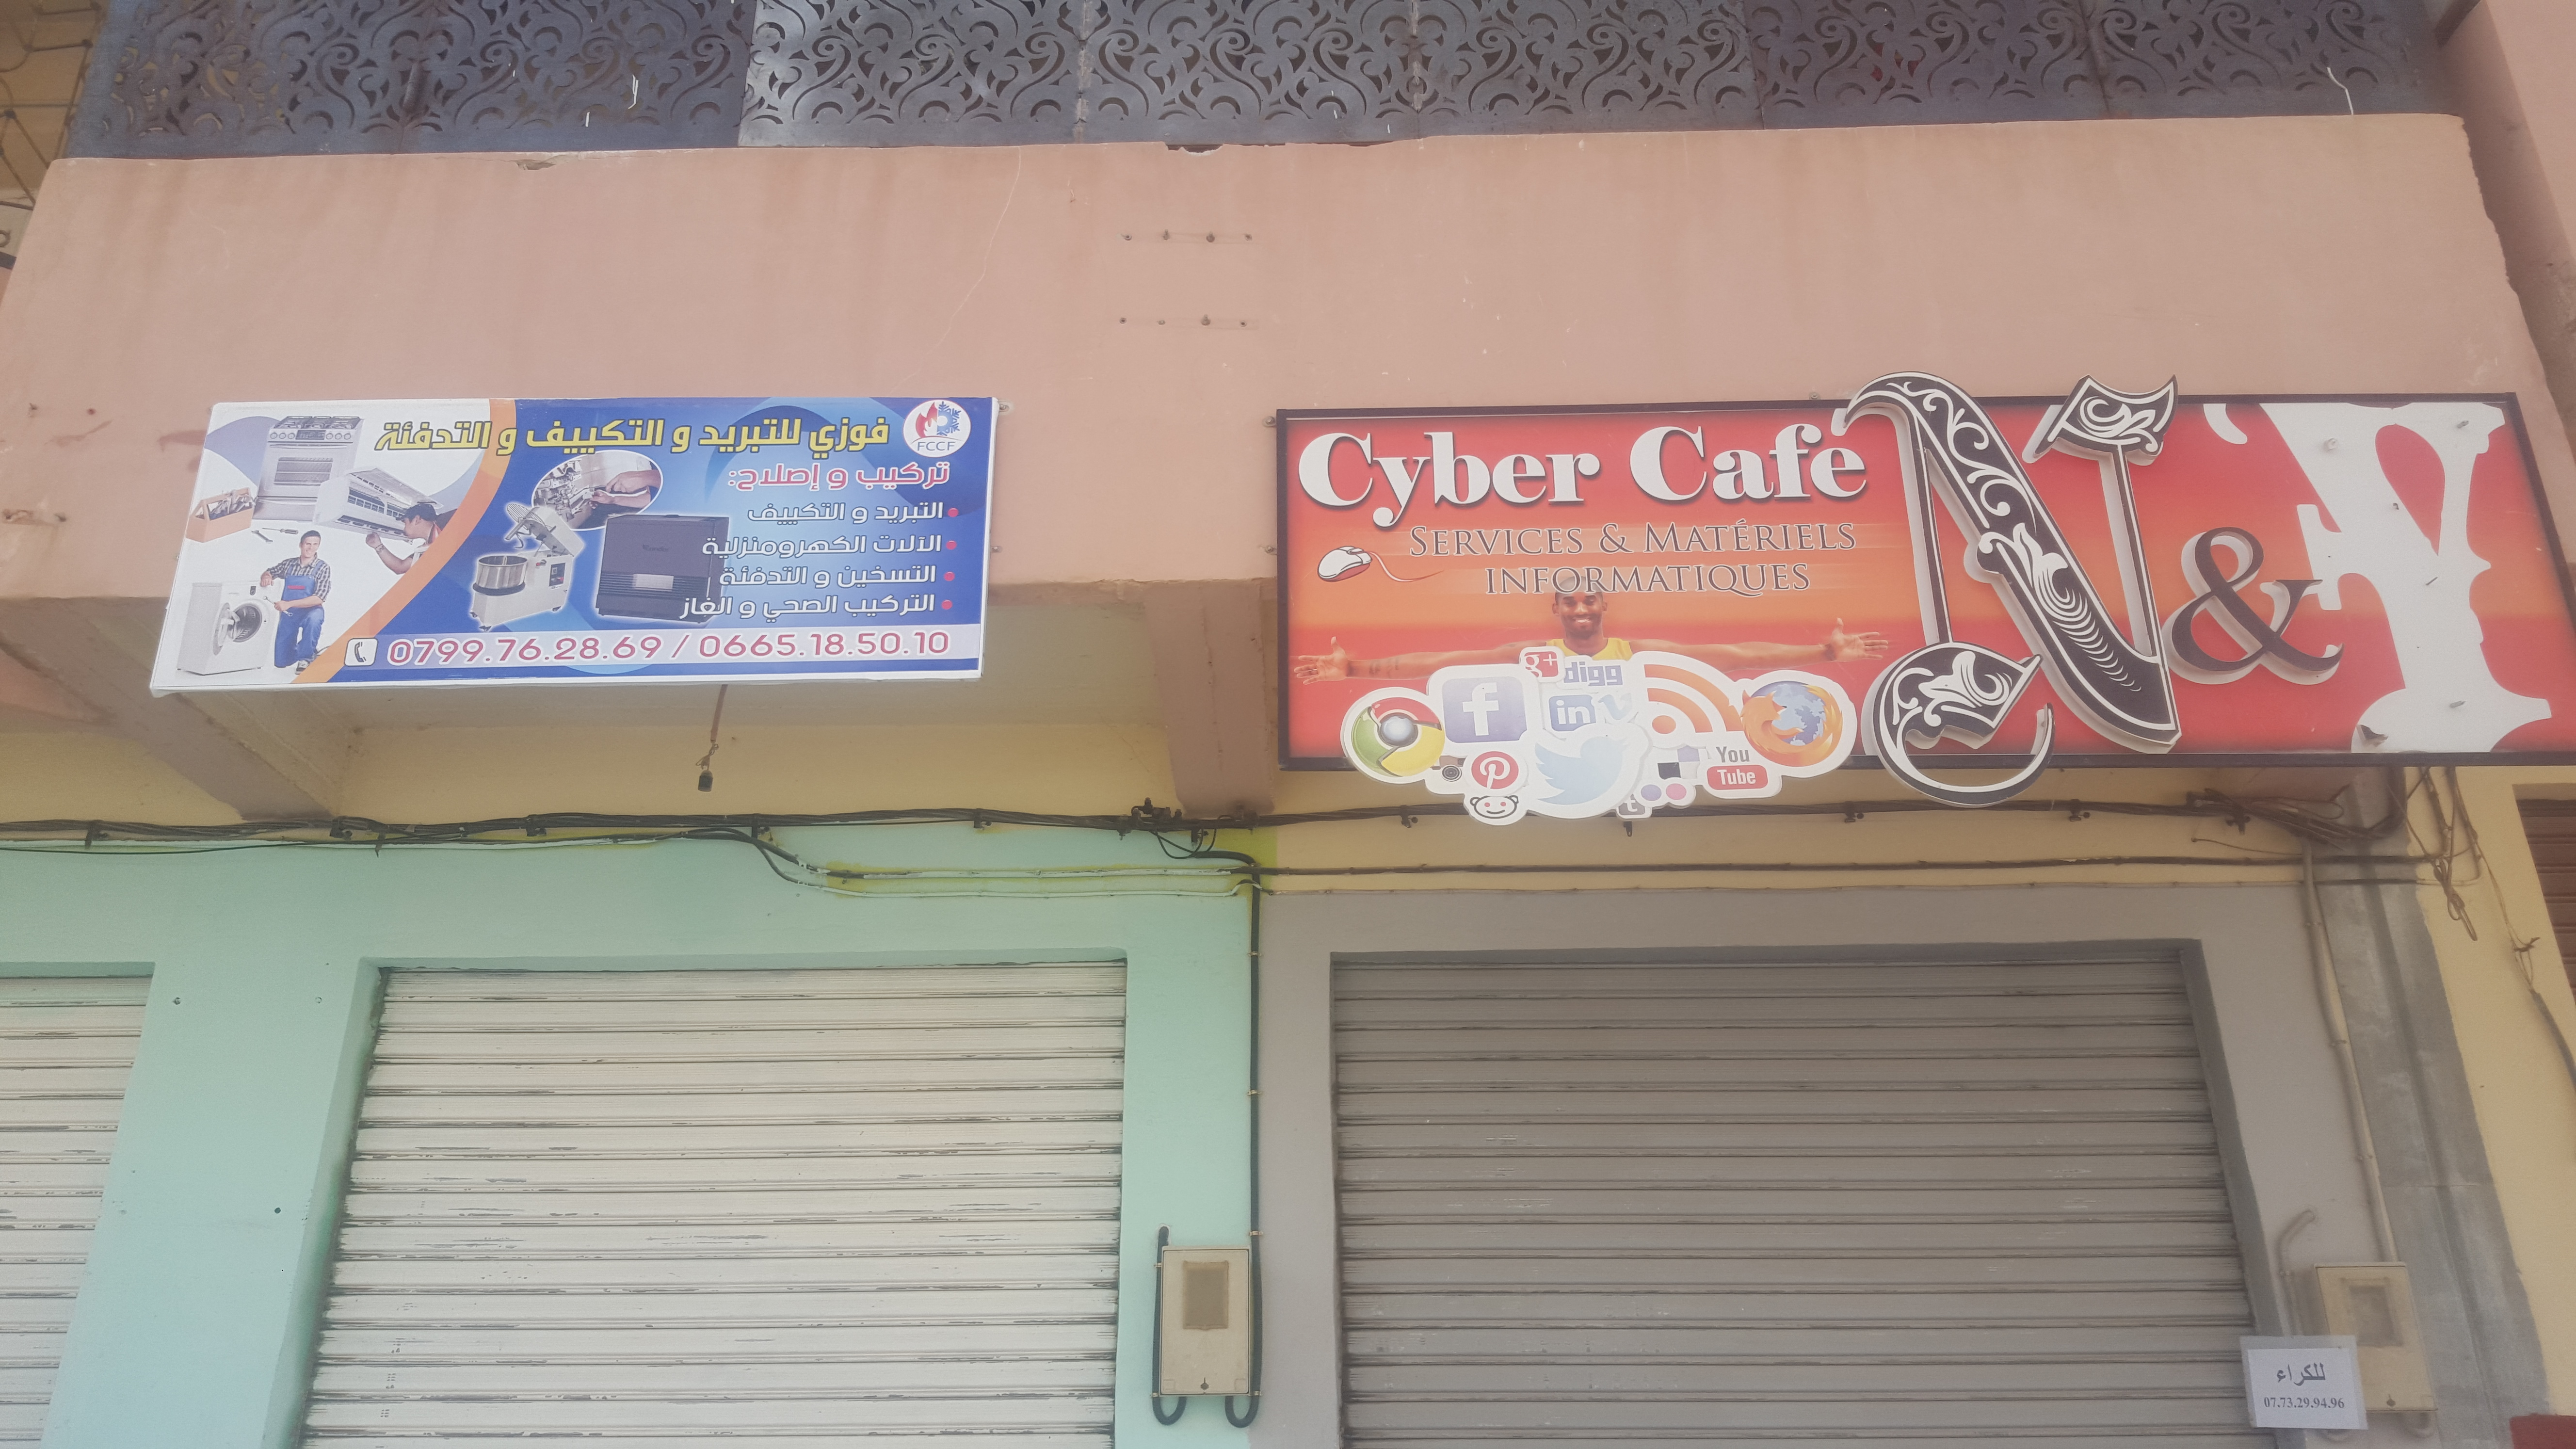 local a louer comme cyber cafe ouedknisse